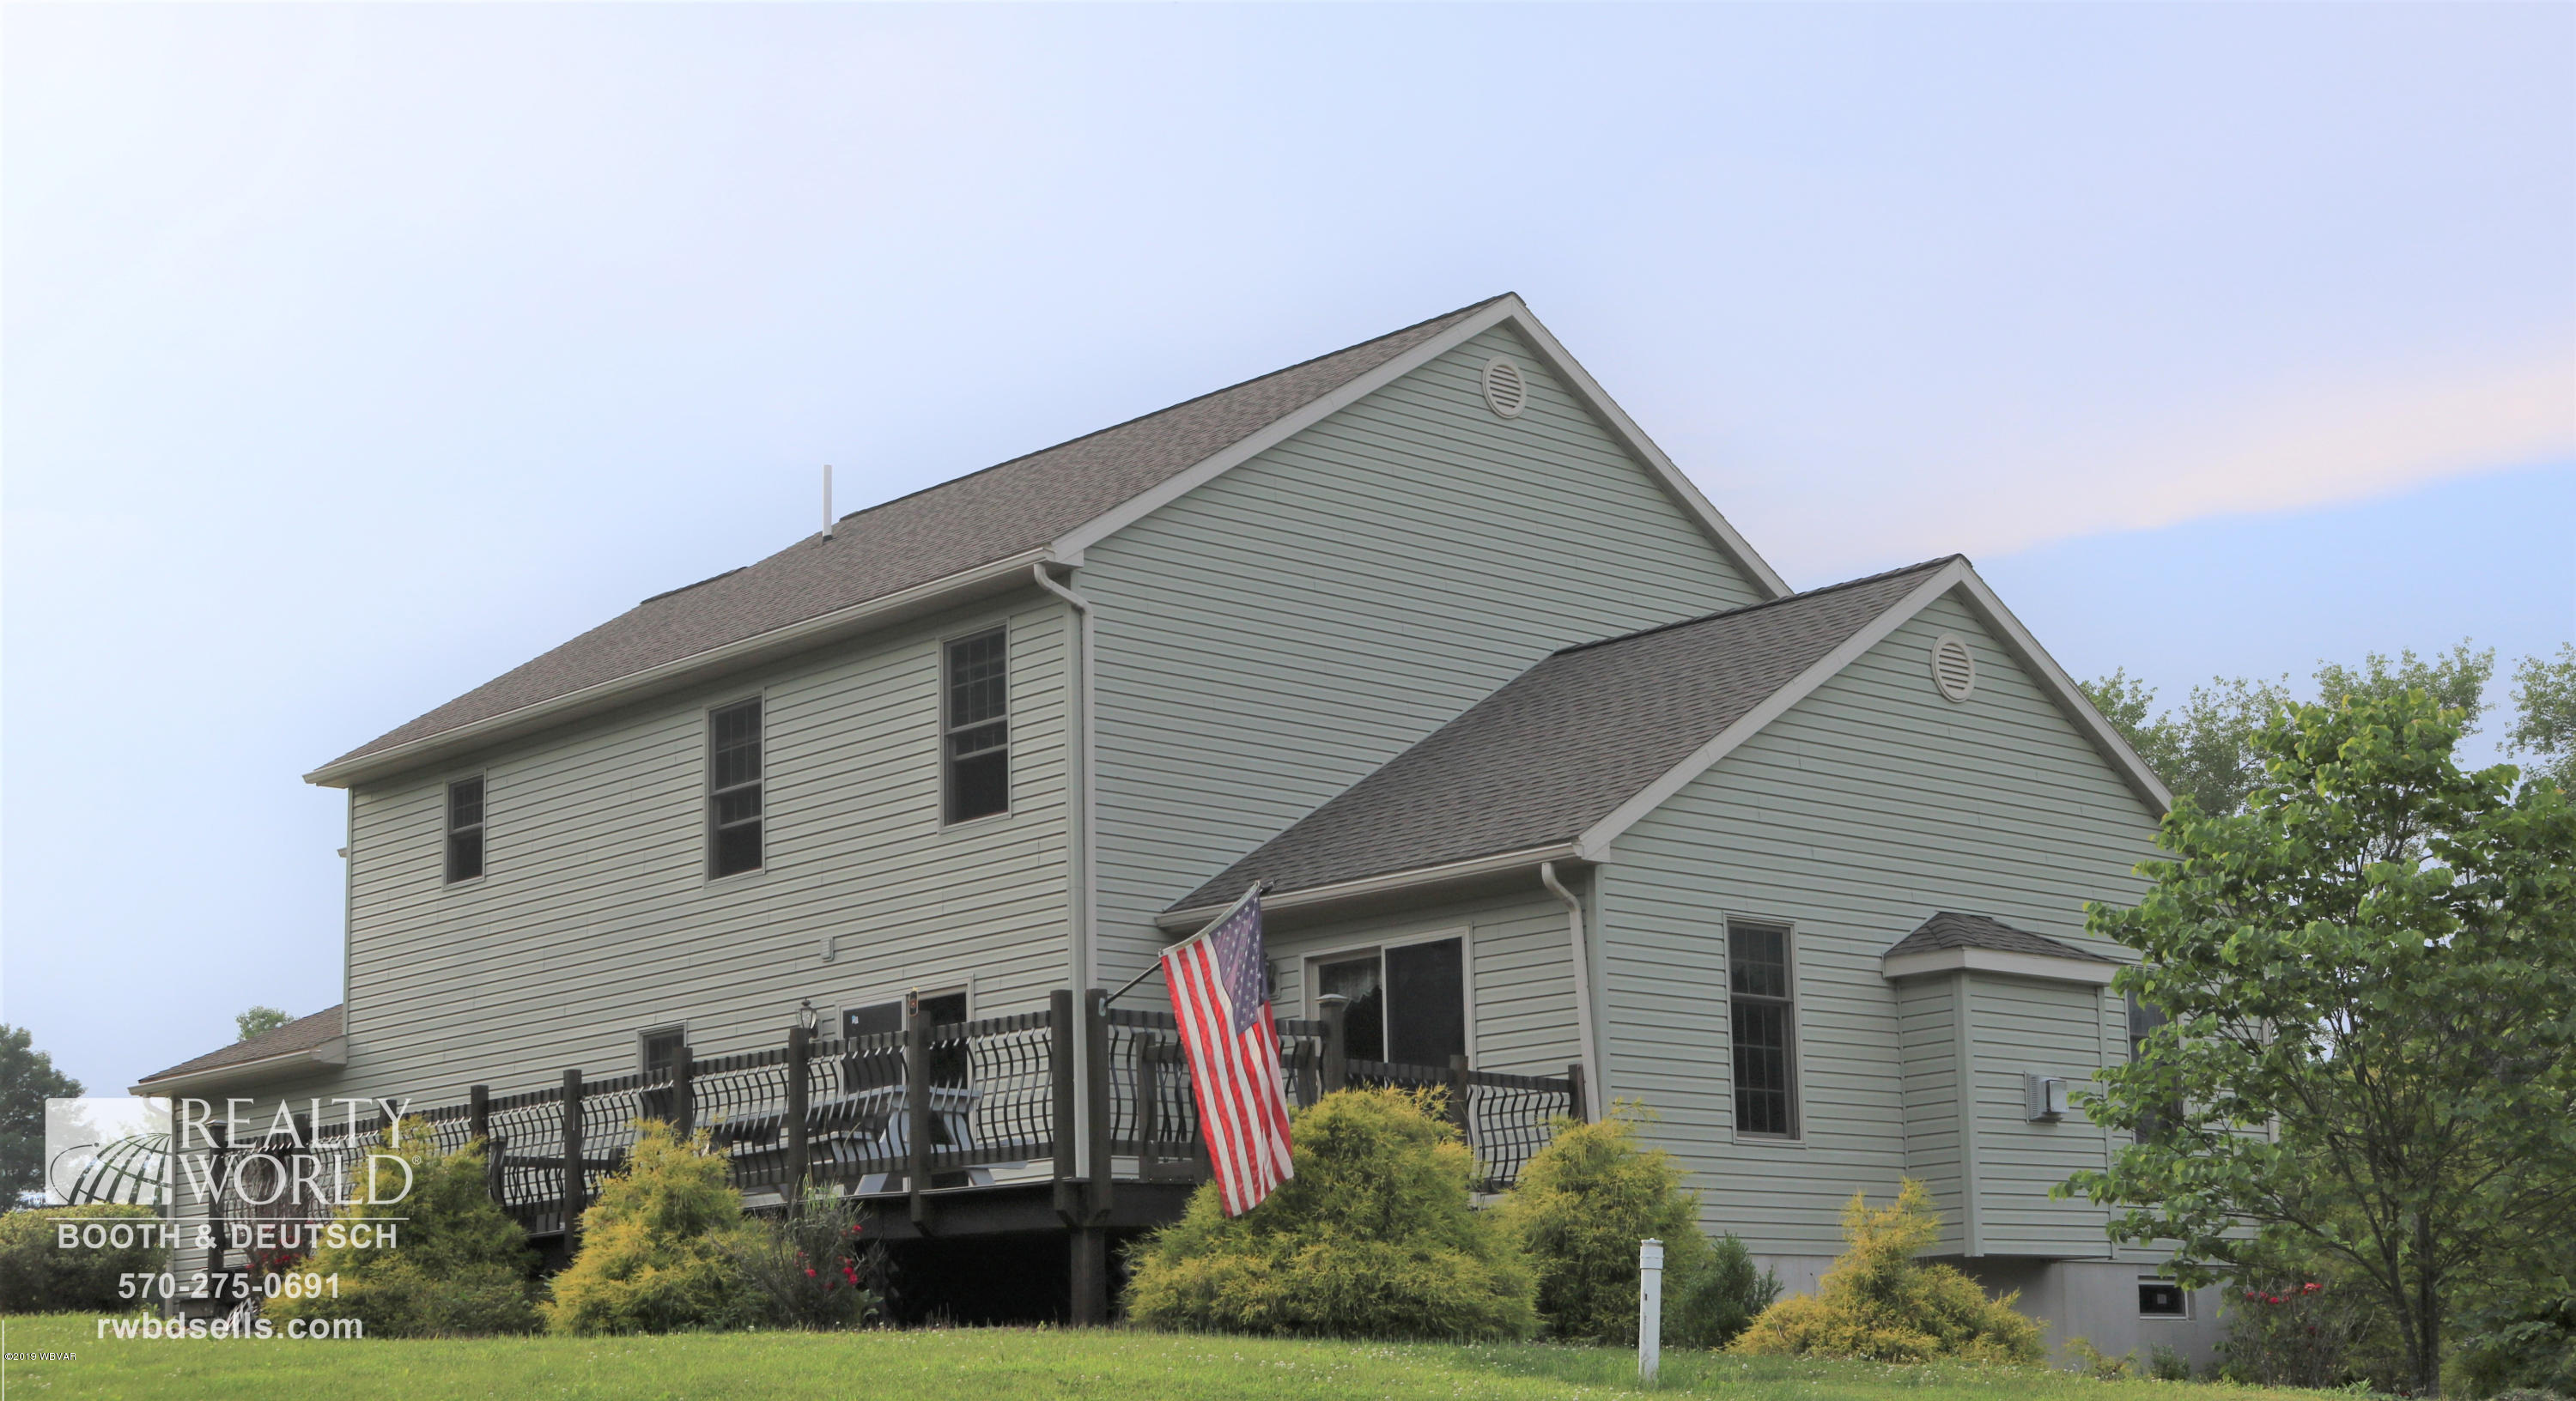 6490 BEAVER LAKE ROAD,Hughesville,PA 17737,4 Bedrooms Bedrooms,4 BathroomsBathrooms,Residential,BEAVER LAKE,WB-87922